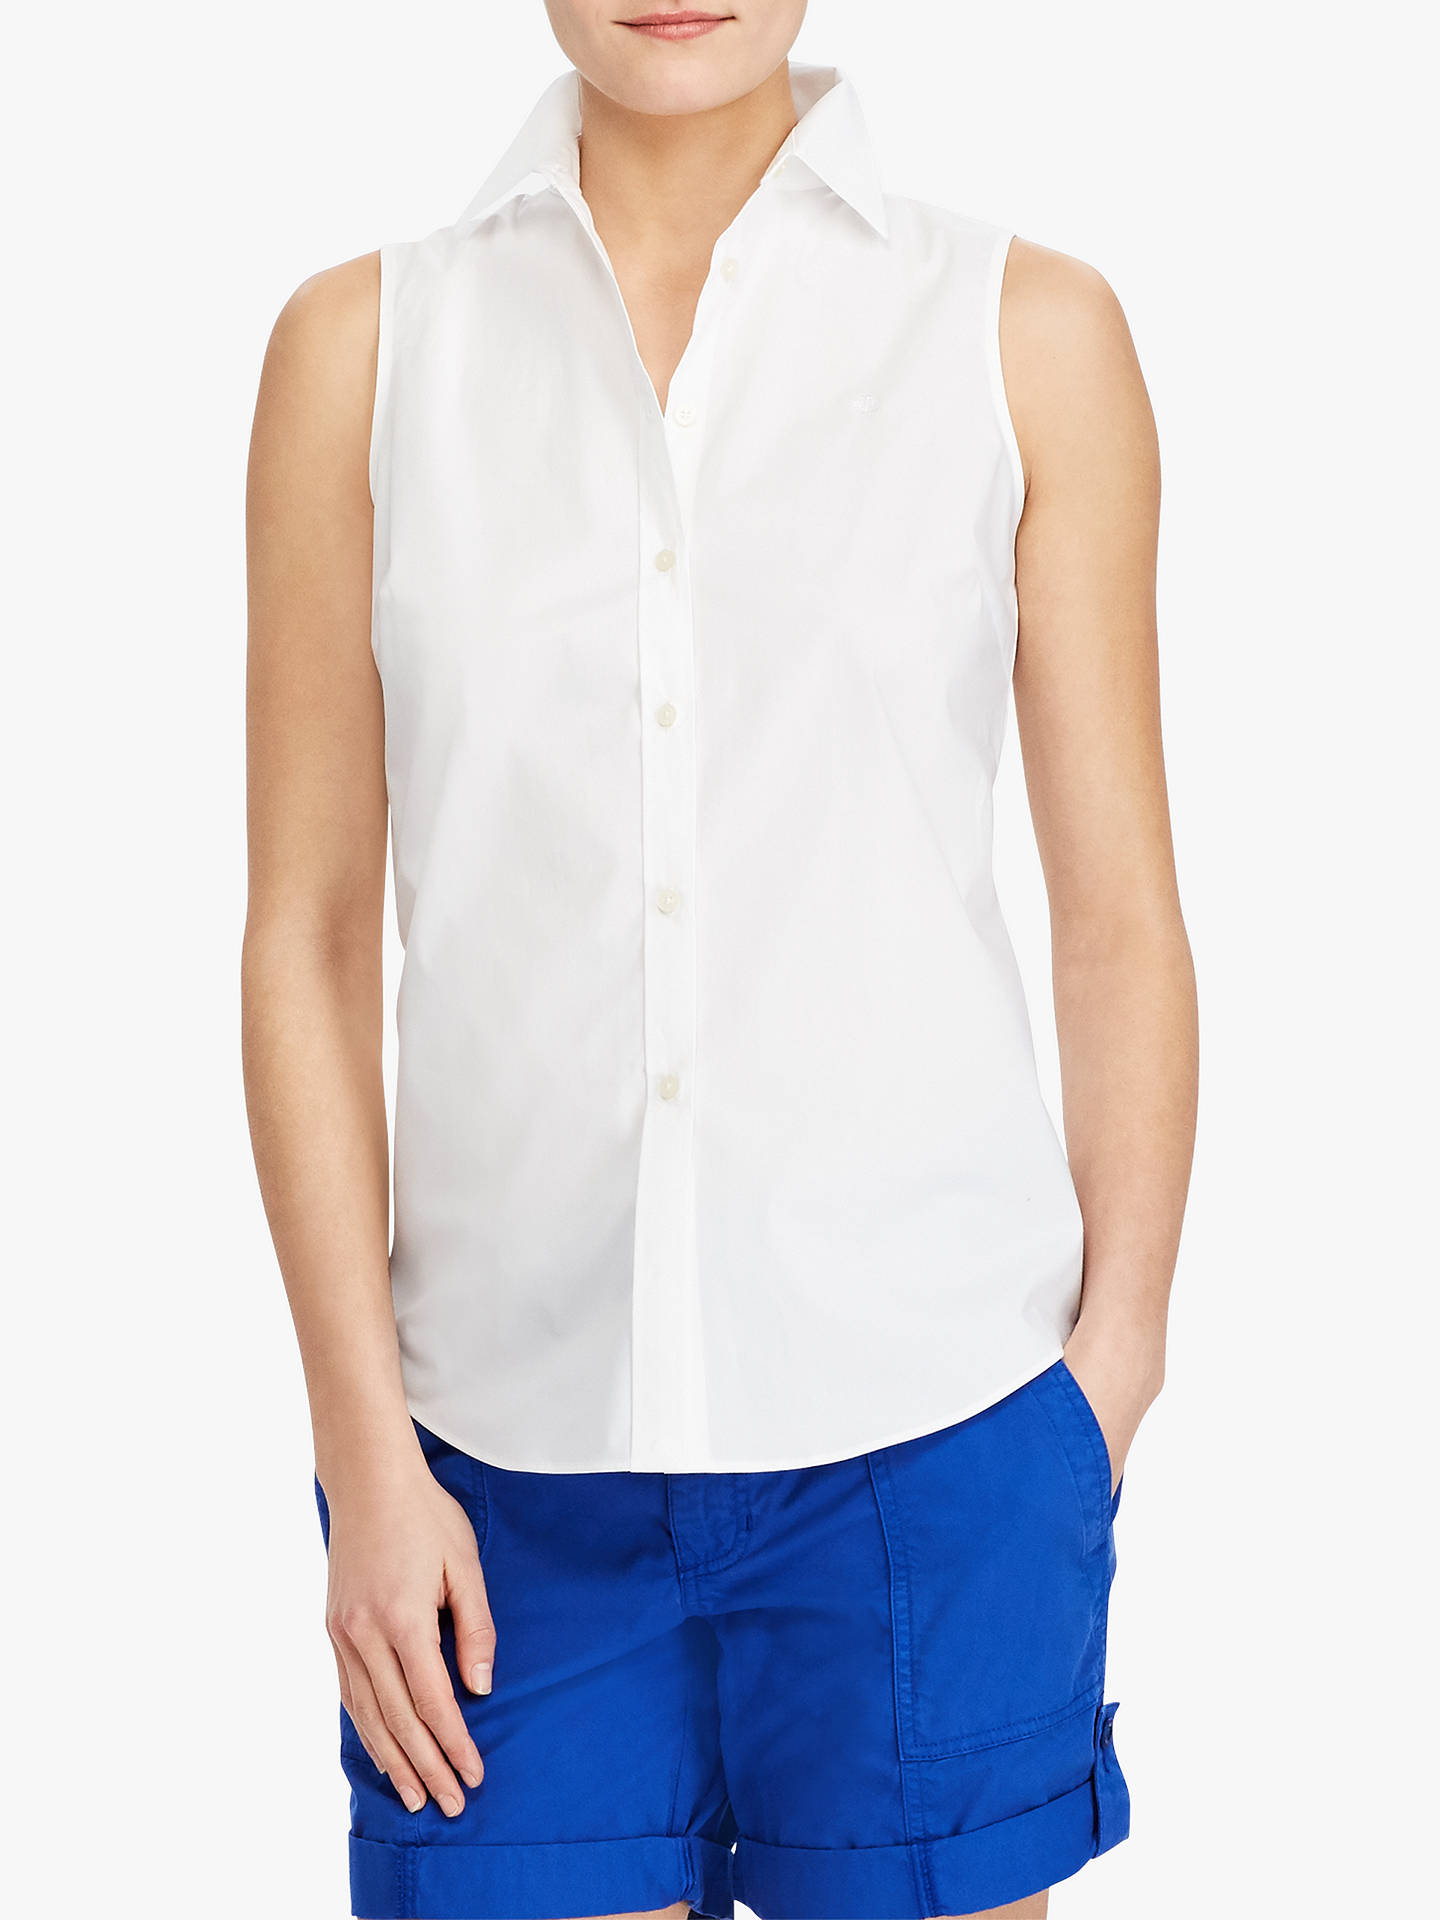 fea072979 Buy Lauren Ralph Lauren Sleeveless Shirt, White, XS Online at johnlewis.com  ...